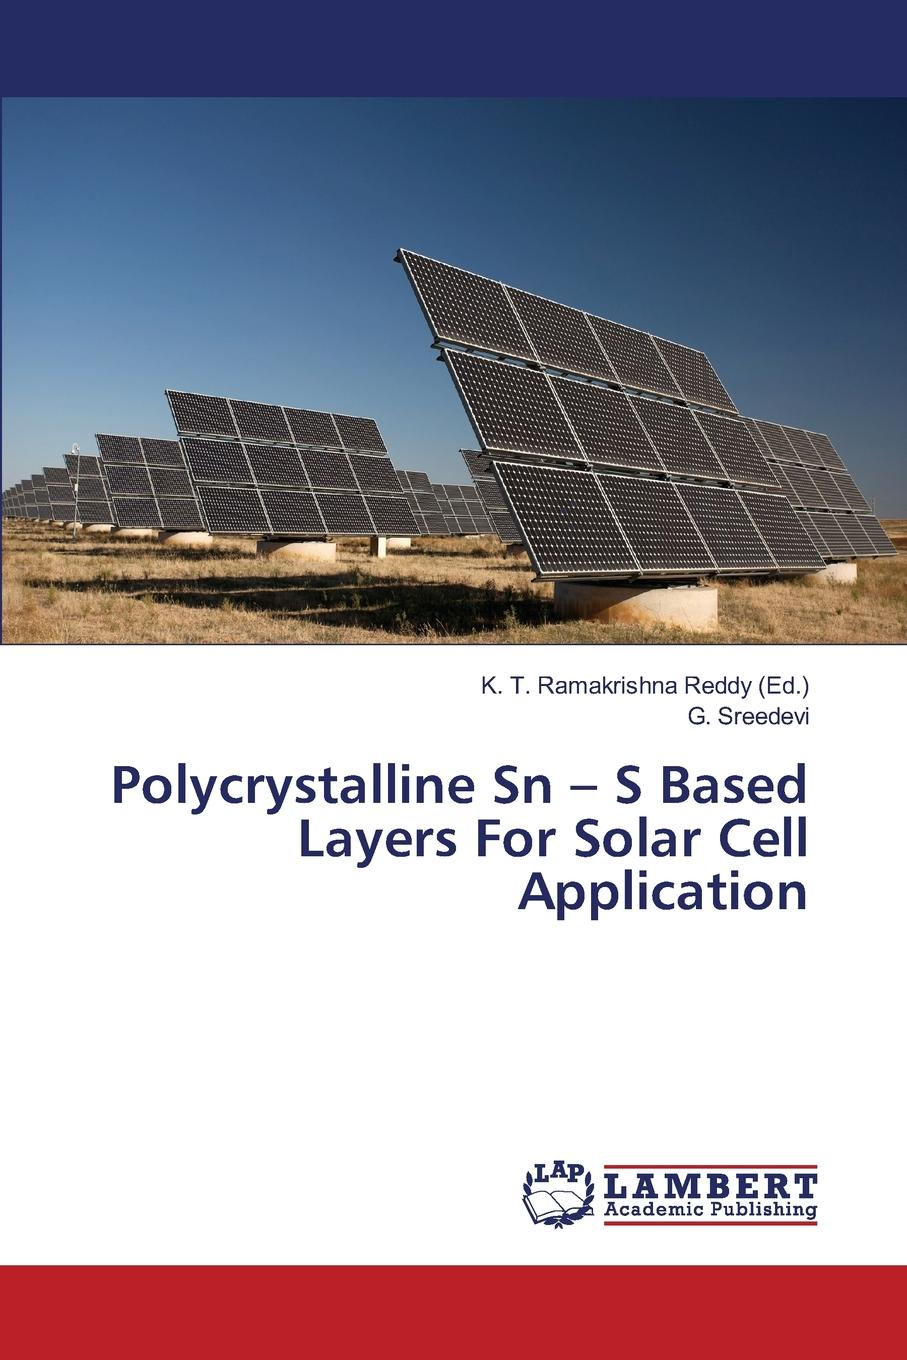 Sreedevi G. Polycrystalline Sn - S Based Layers For Solar Cell Application